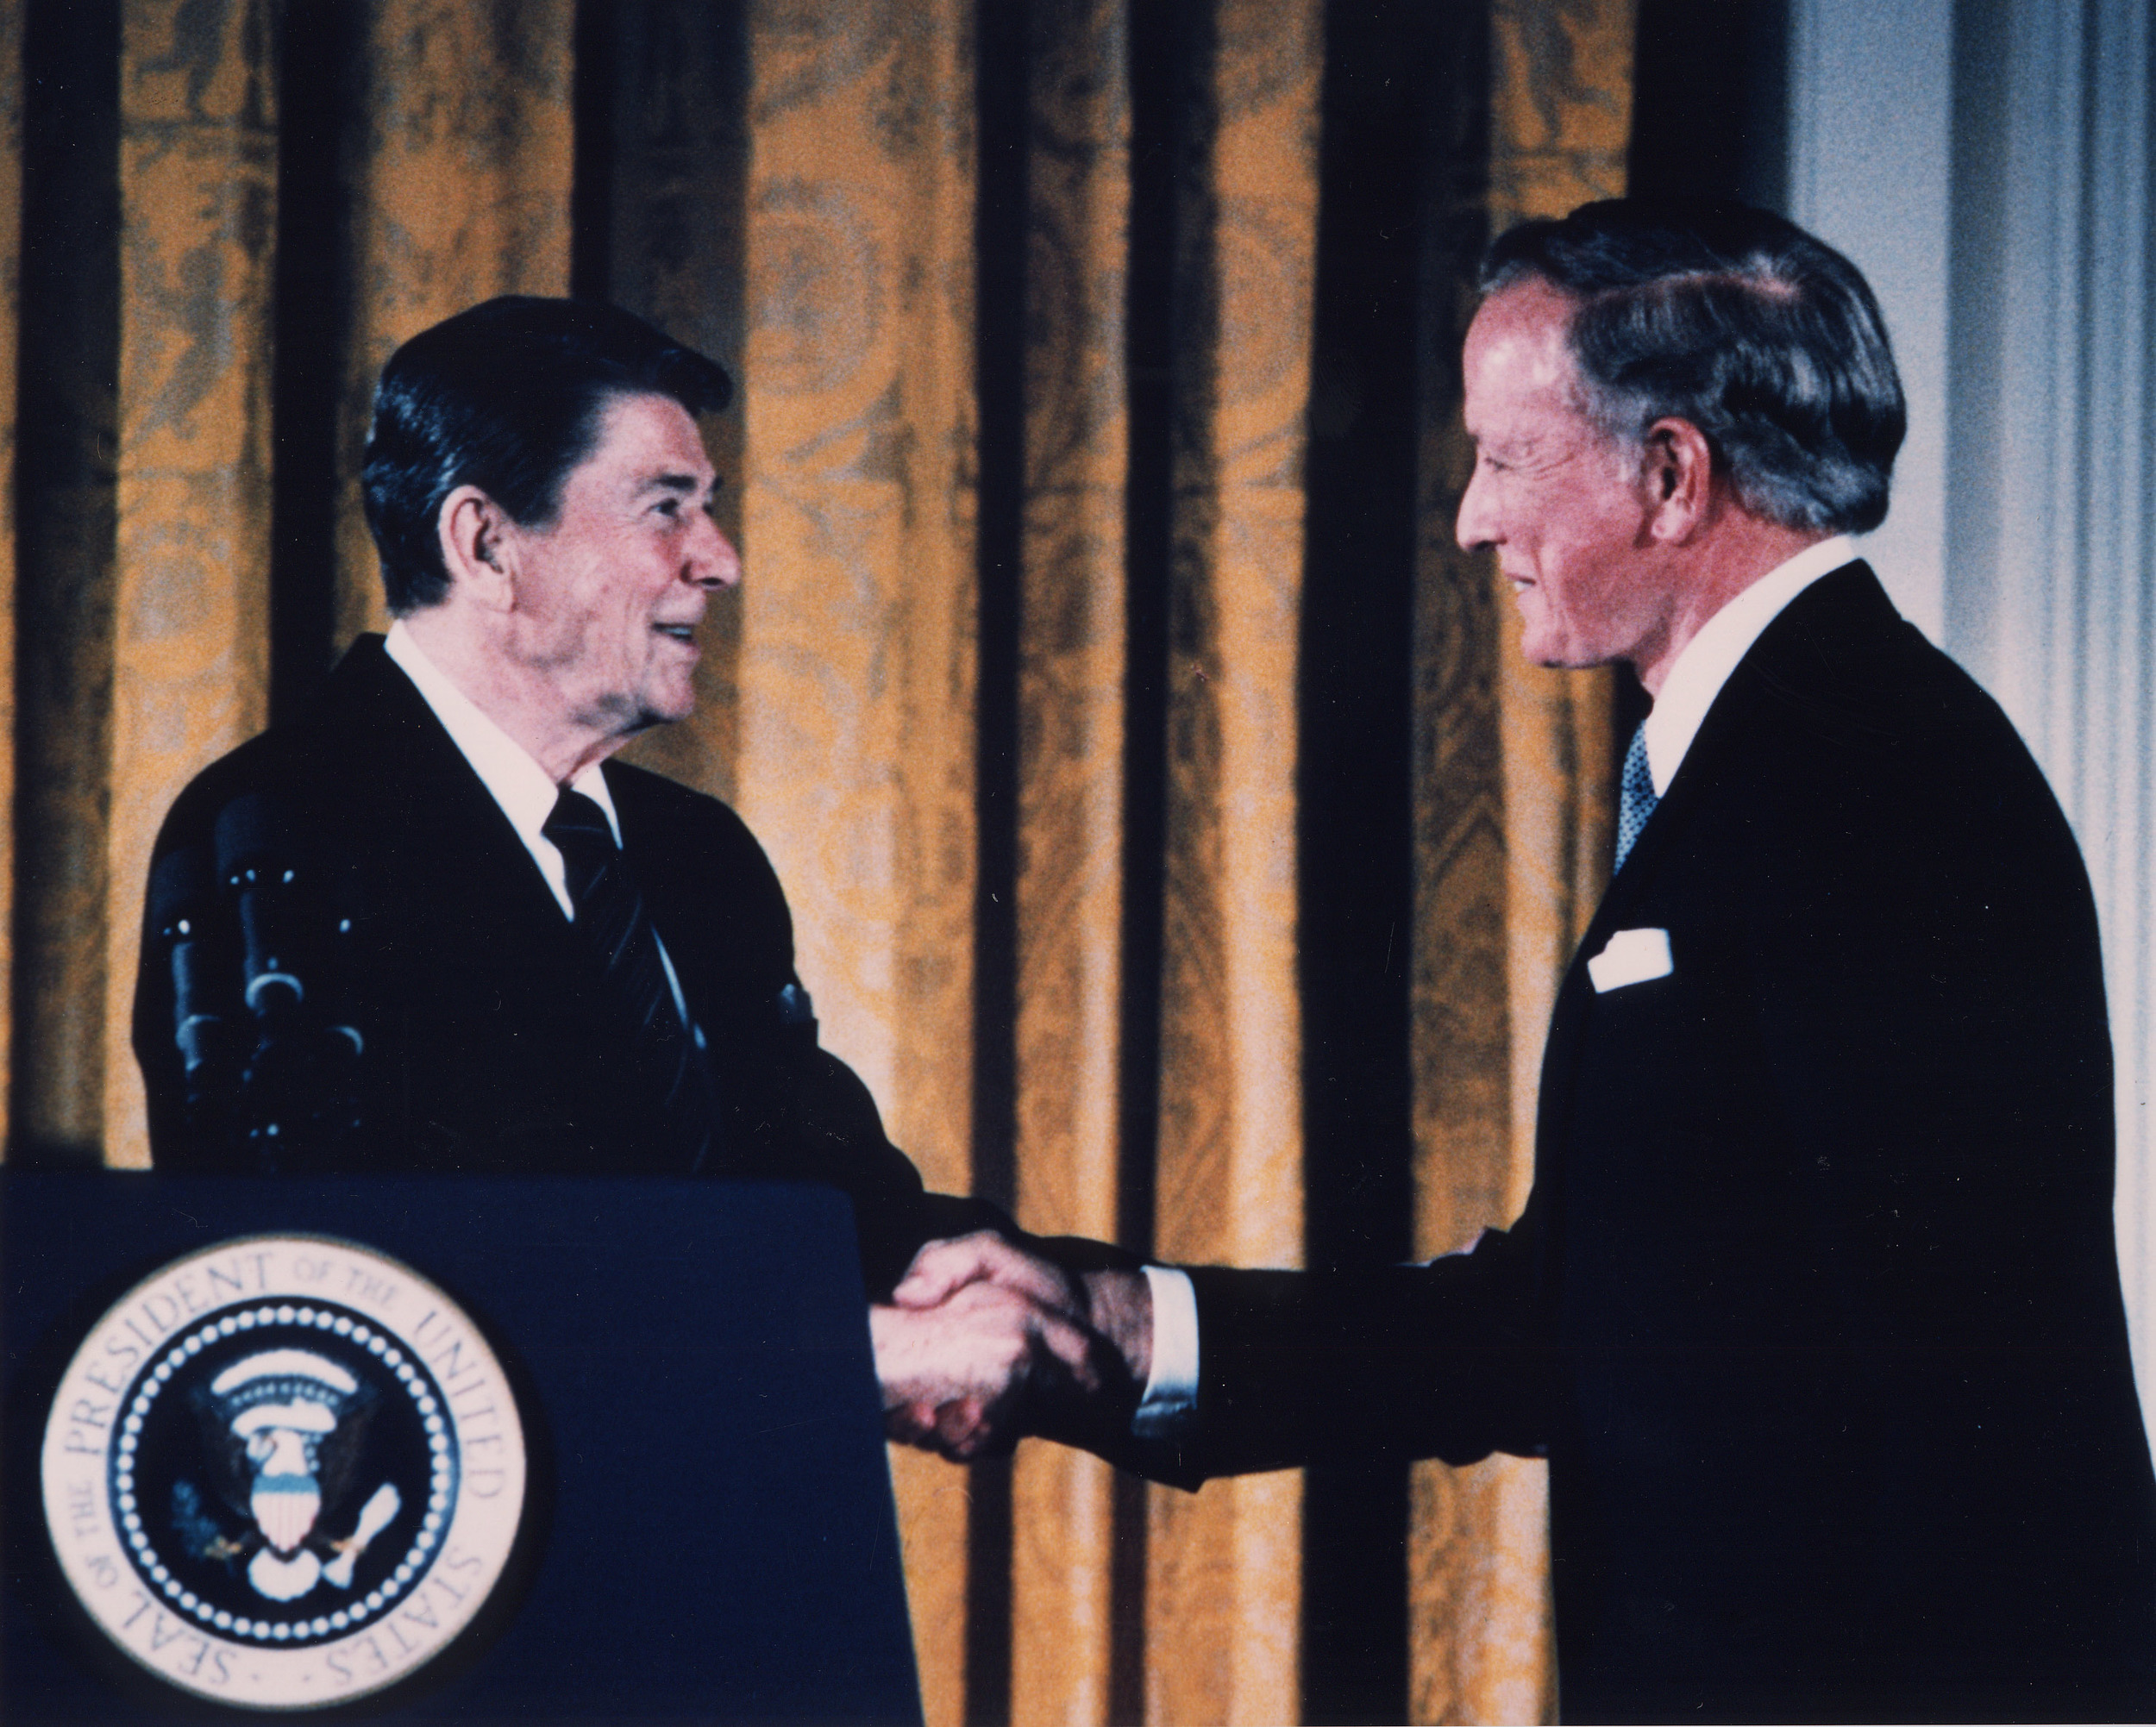 Dr. Cooley receiving the Presidential Medal of Freedom from President Ronald Reagan in 1984.